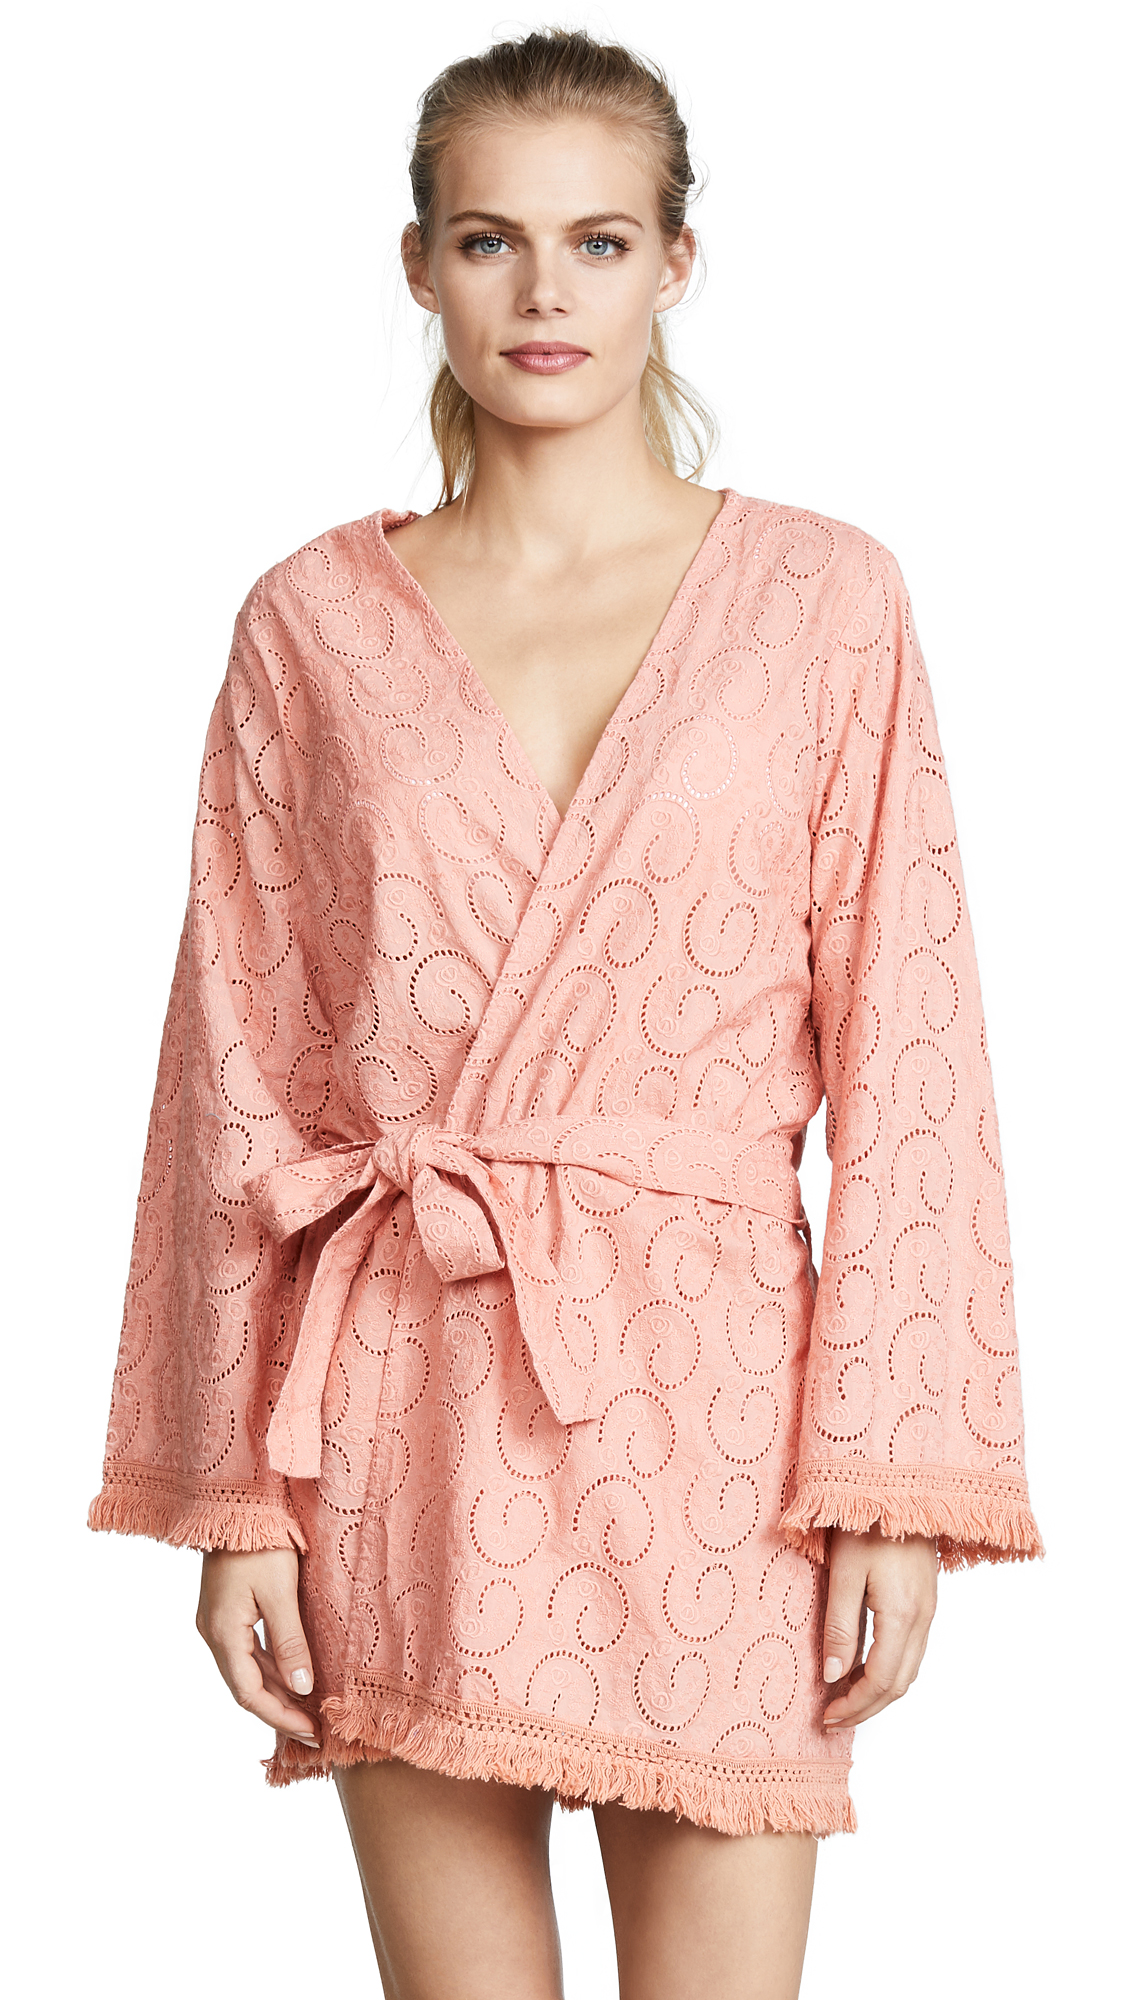 Melissa Odabash Pippa Cover Up Robe - Apricot